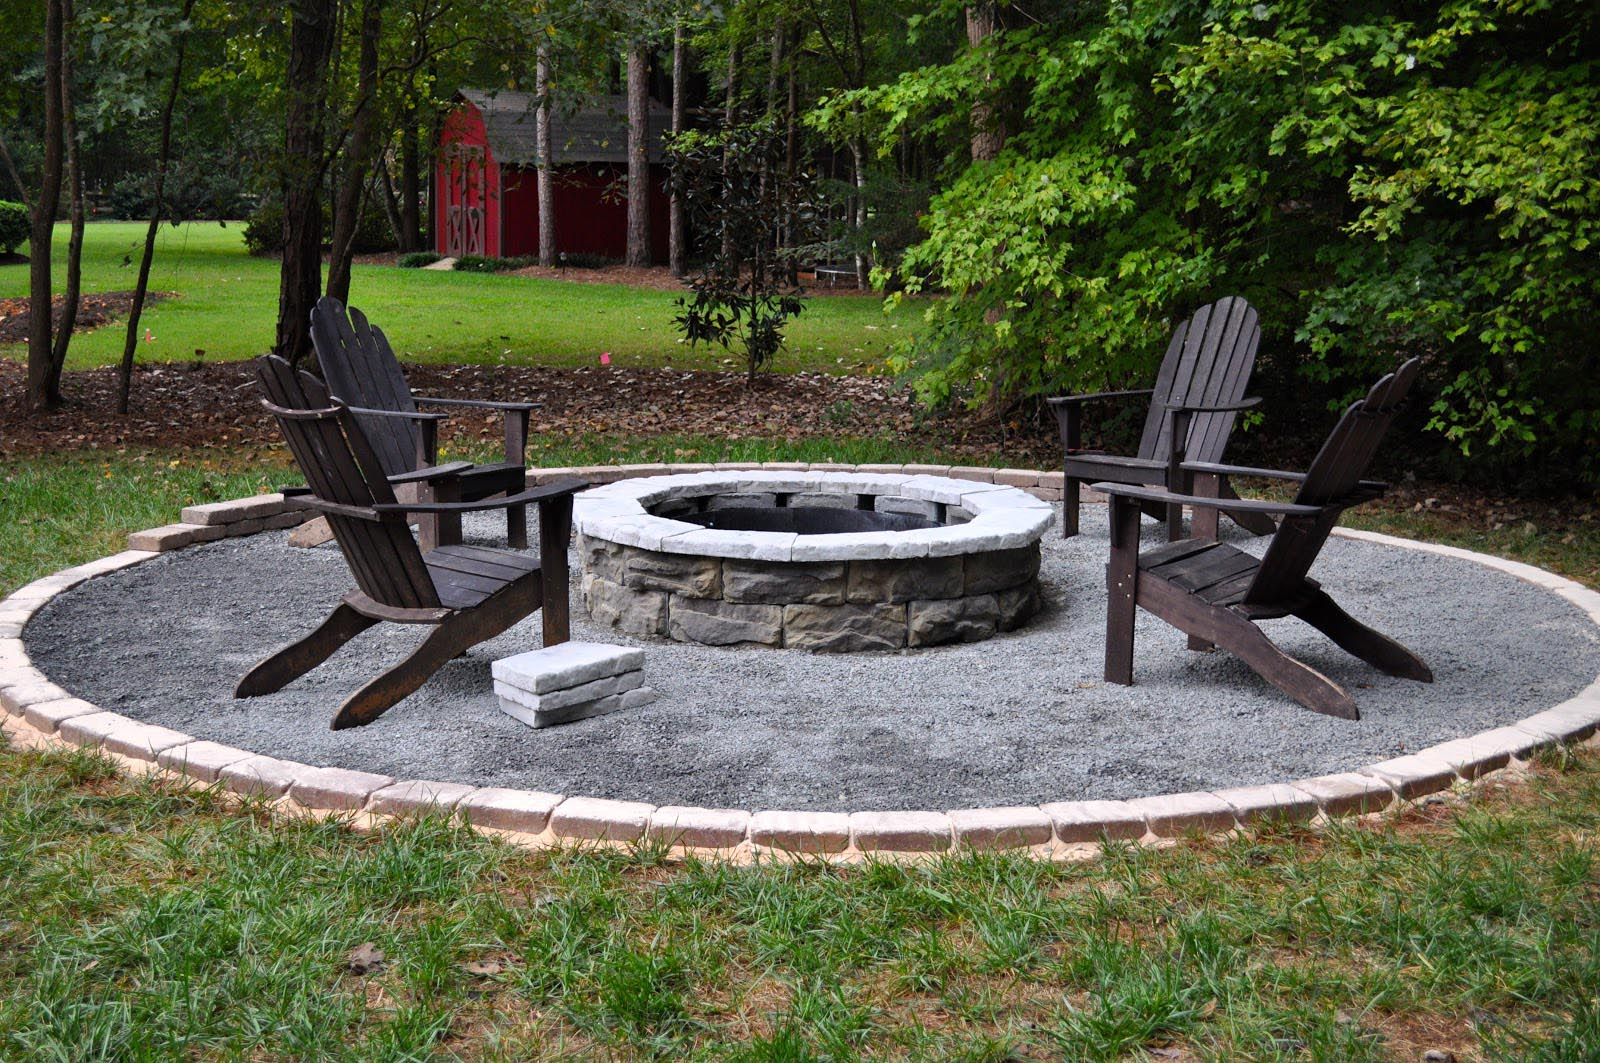 Everyone Needs a Small Fire Pit | Fire Pit Design Ideas on Backyard Patio Designs With Fire Pit  id=40709